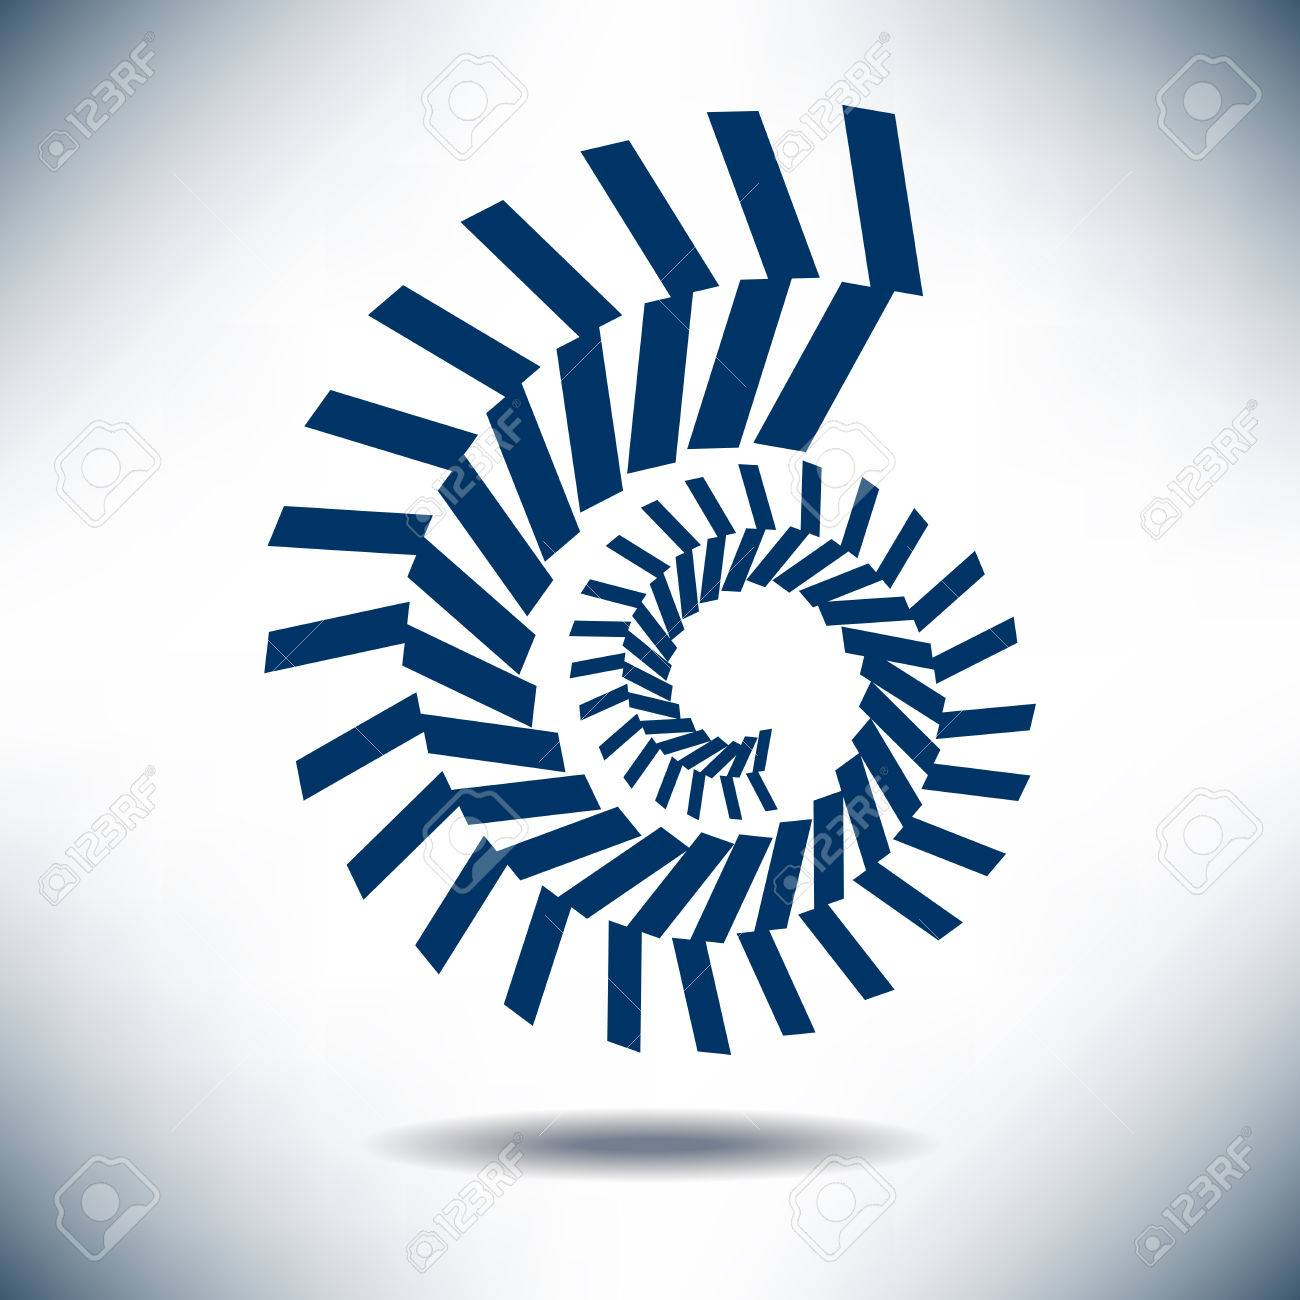 Nautilus Image with a Simple Blue Background - 39979890